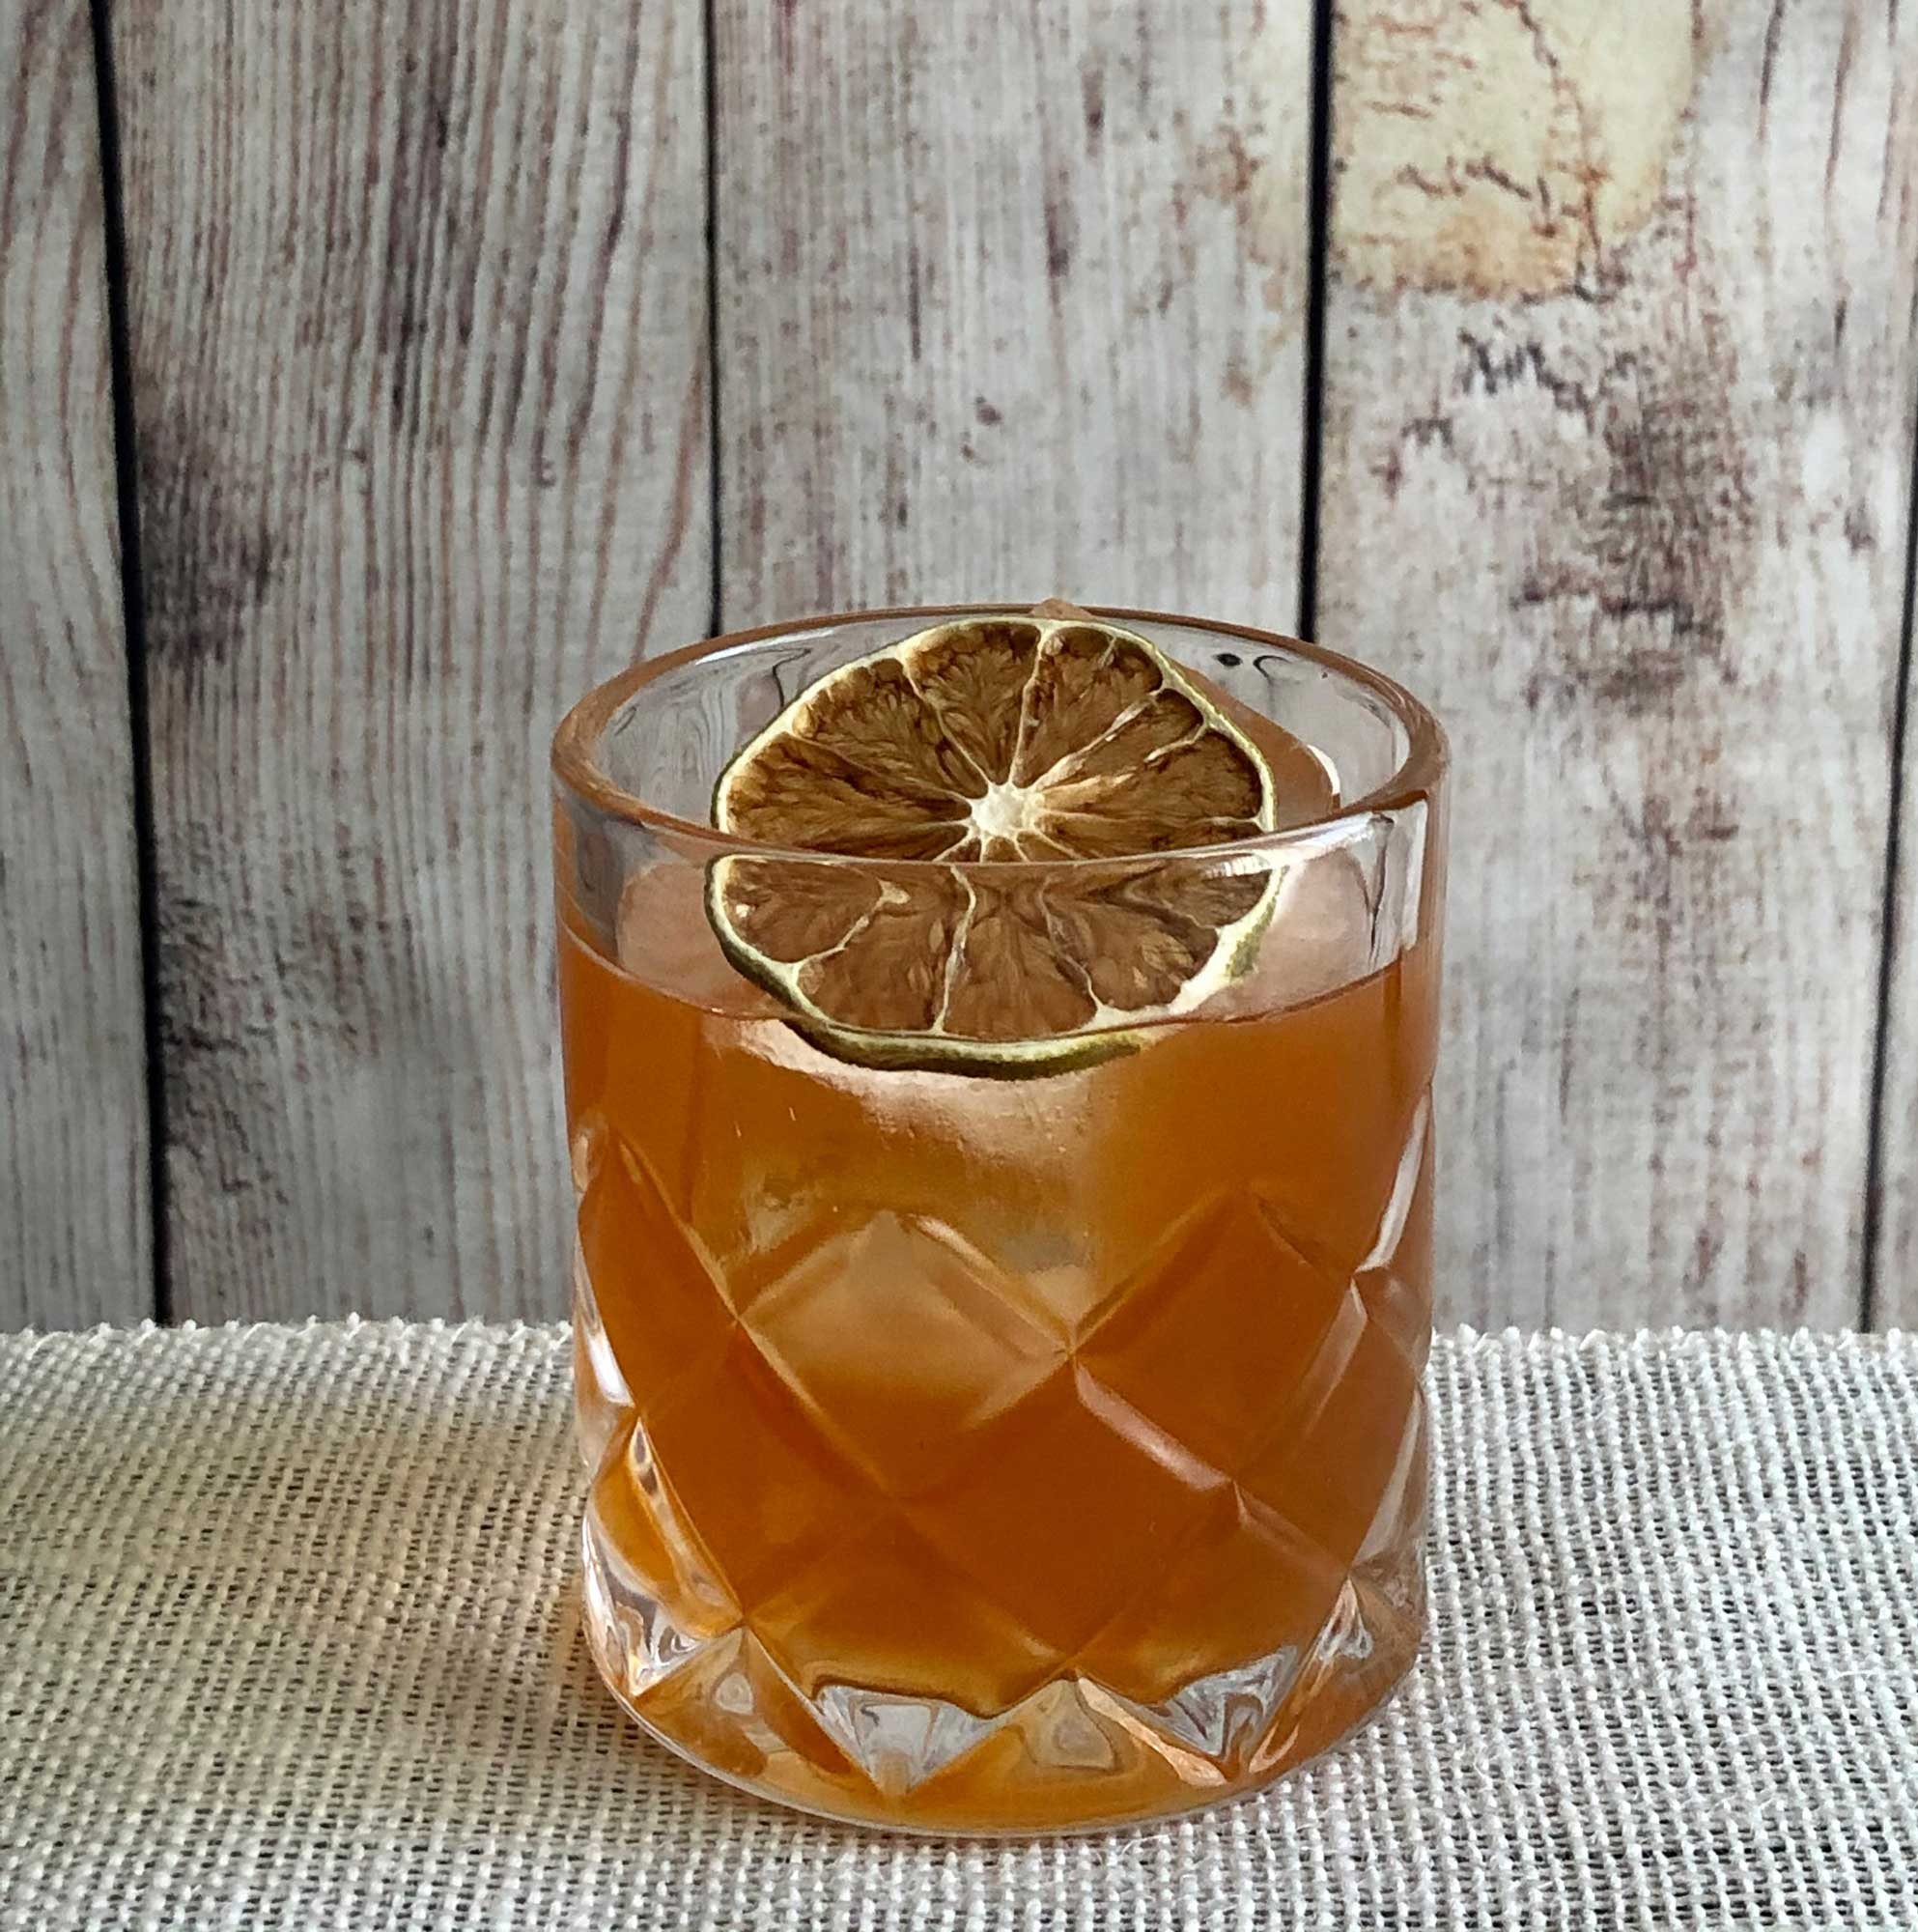 An example of the Bajan Legend, the mixed drink (cocktail) featuring brown barbados rum, John D. Taylor's Velvet Falernum, and Angostura bitters; photo by Lee Edwards